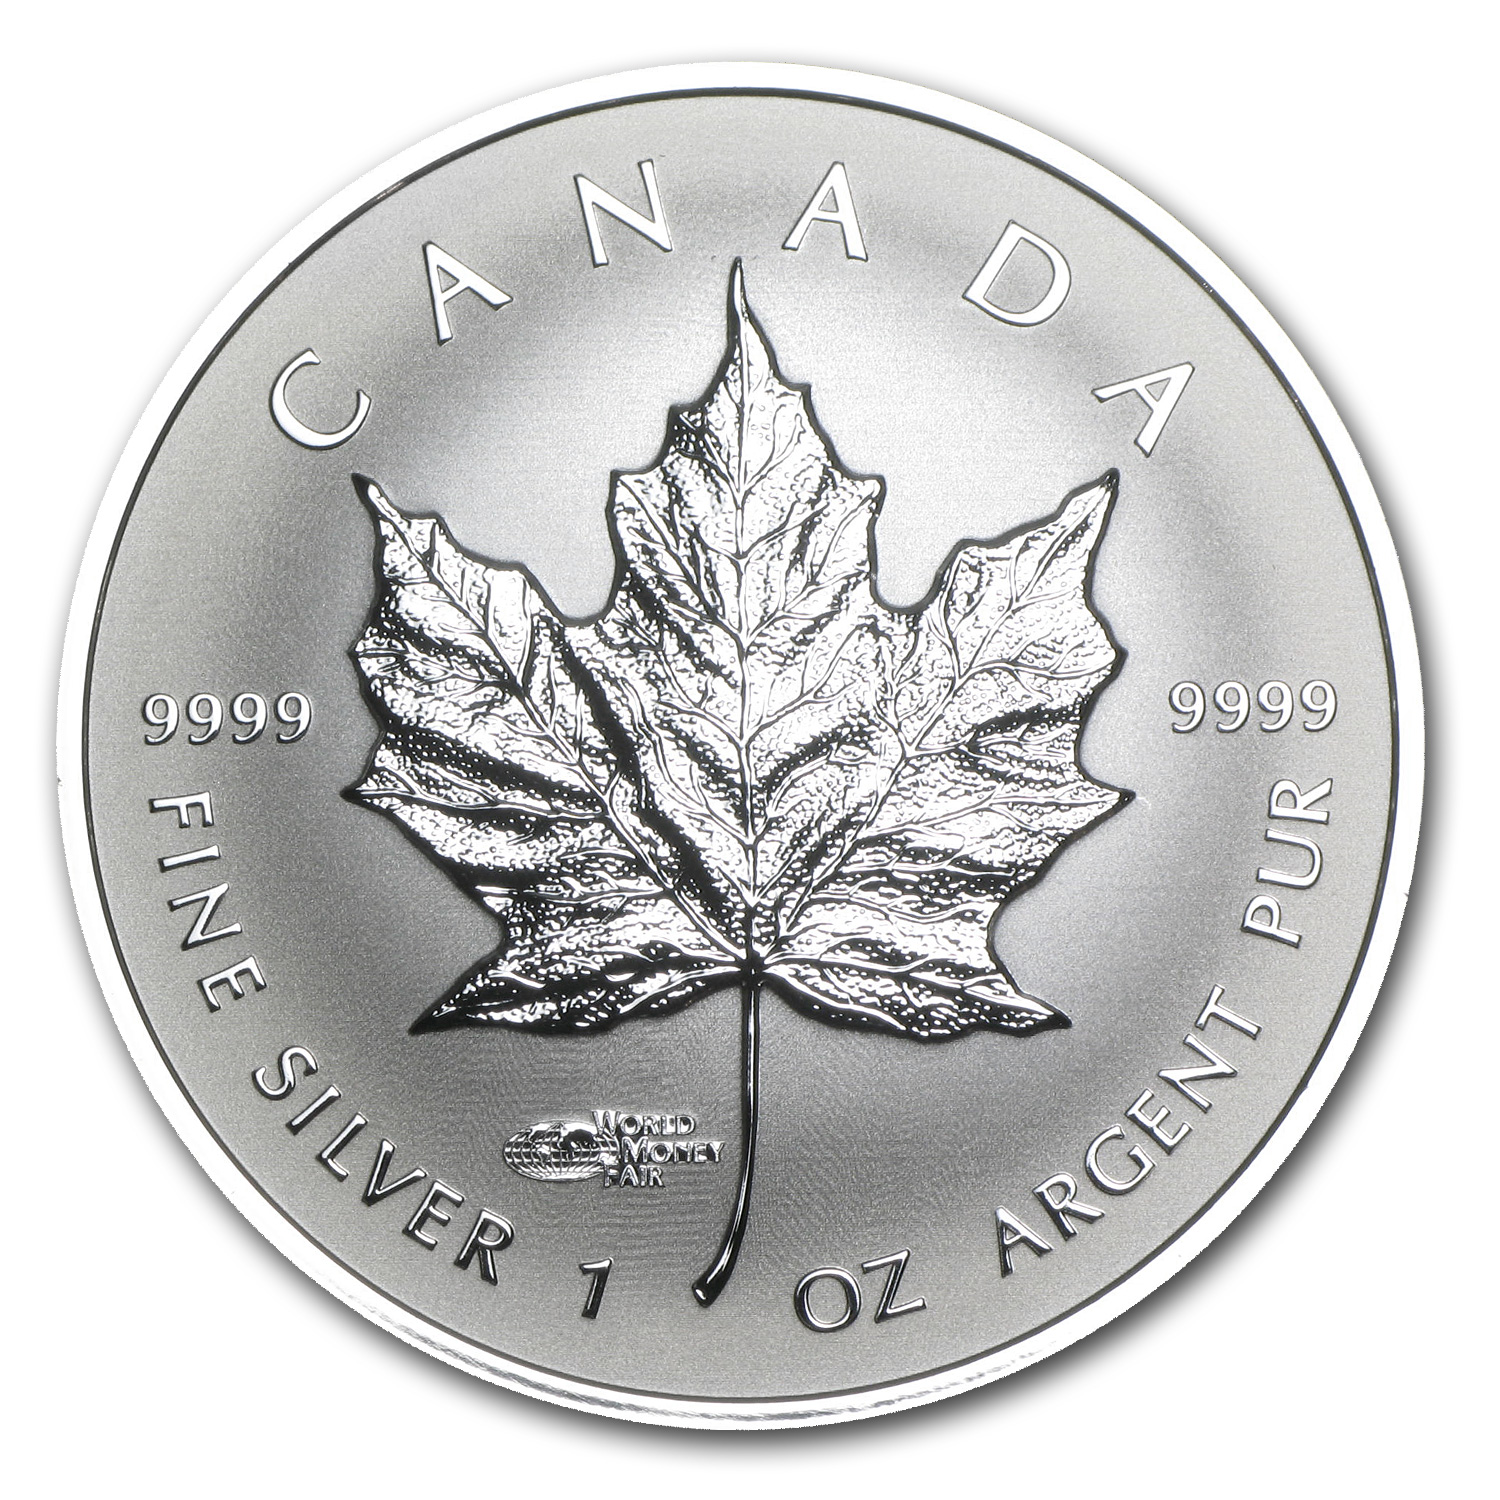 2014 1 oz Silver Reverse Prf Canadian Maple Leaf (WMF Privy Mark)